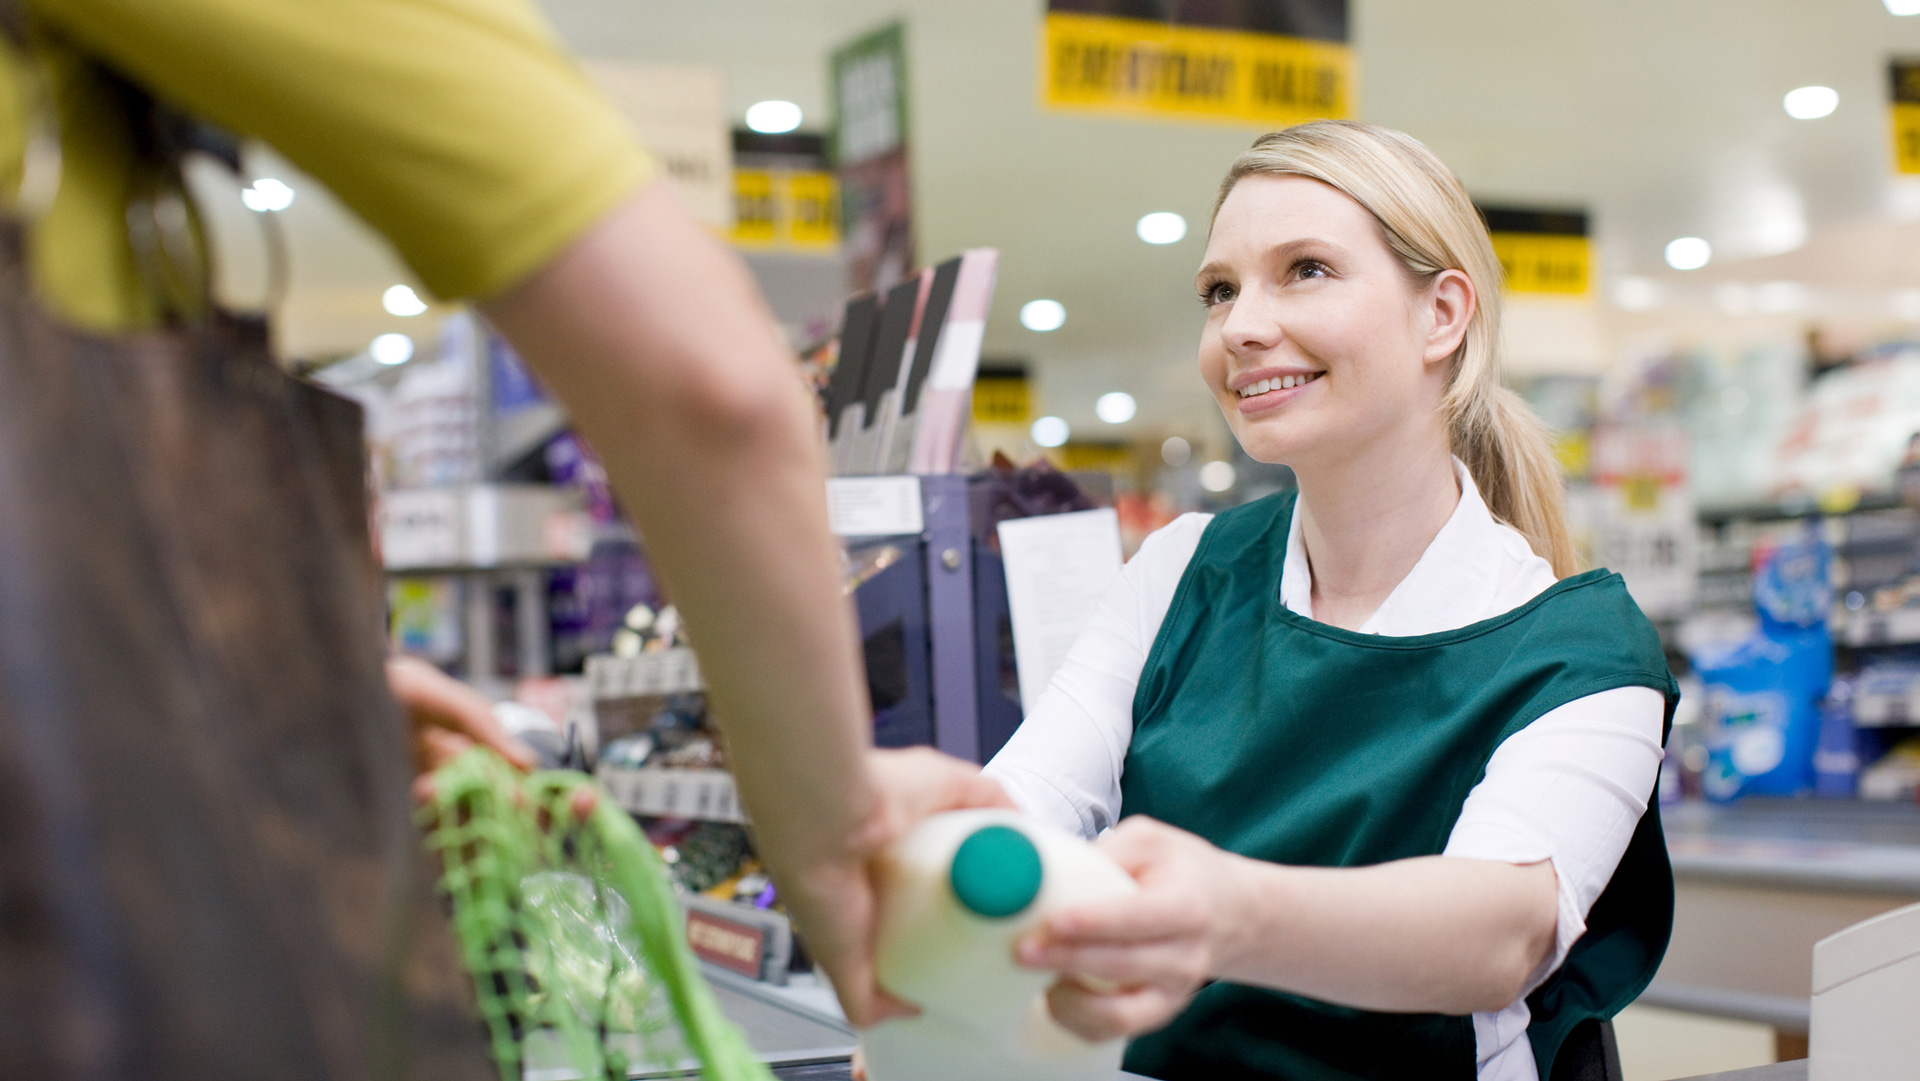 Find a retail job near you with APM